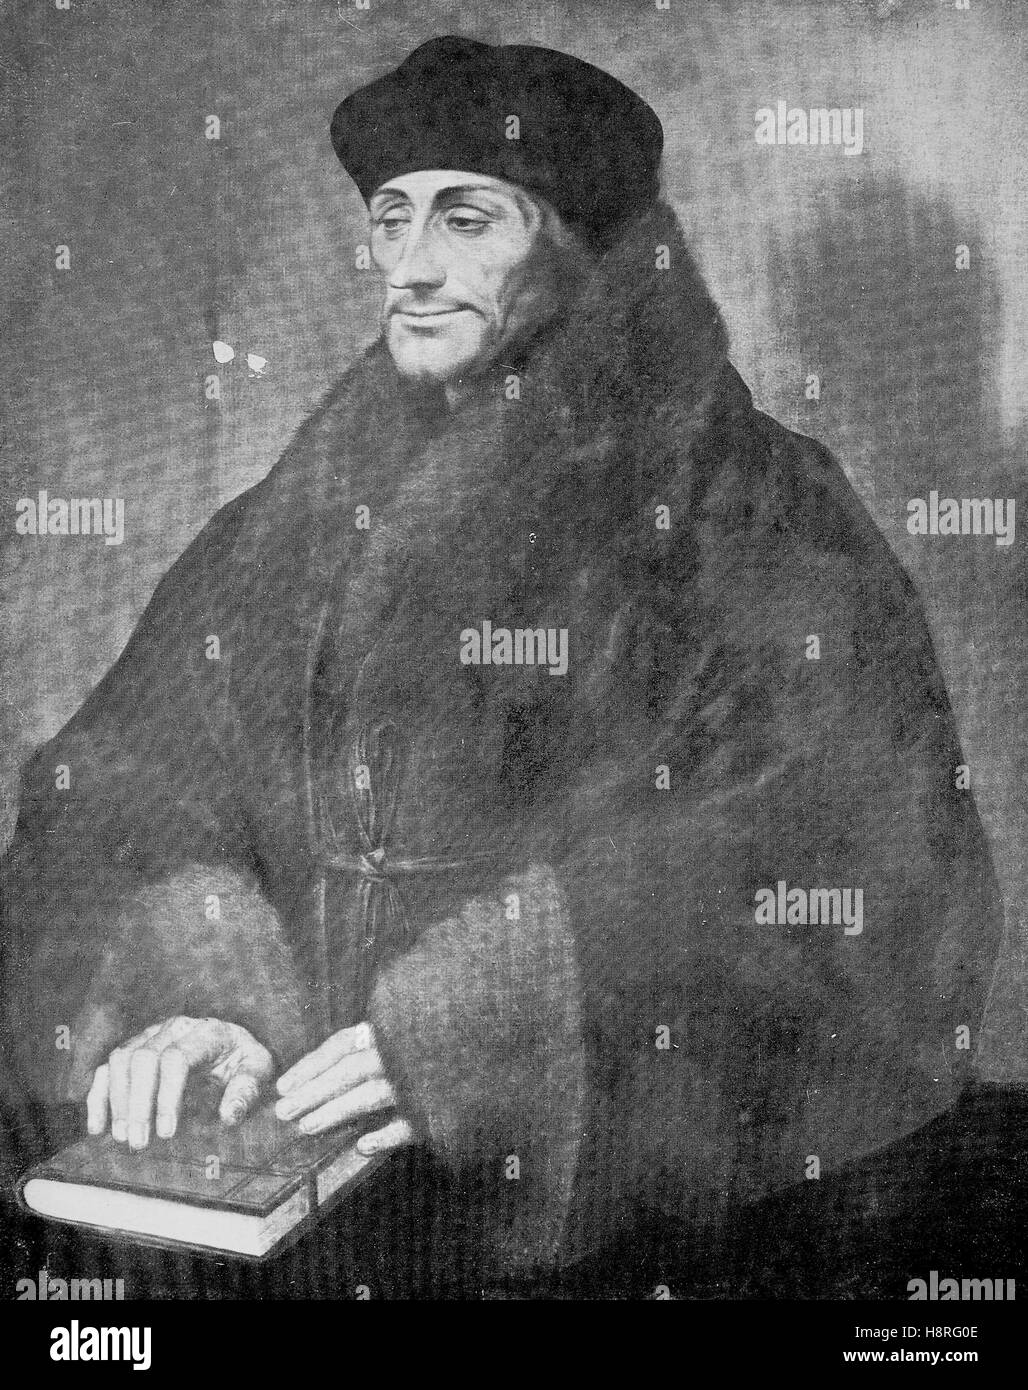 Desiderius Erasmus Roterodamus, known as Erasmus or Erasmus of Rotterdam, was a Dutch Renaissance humanist, Catholic - Stock Image